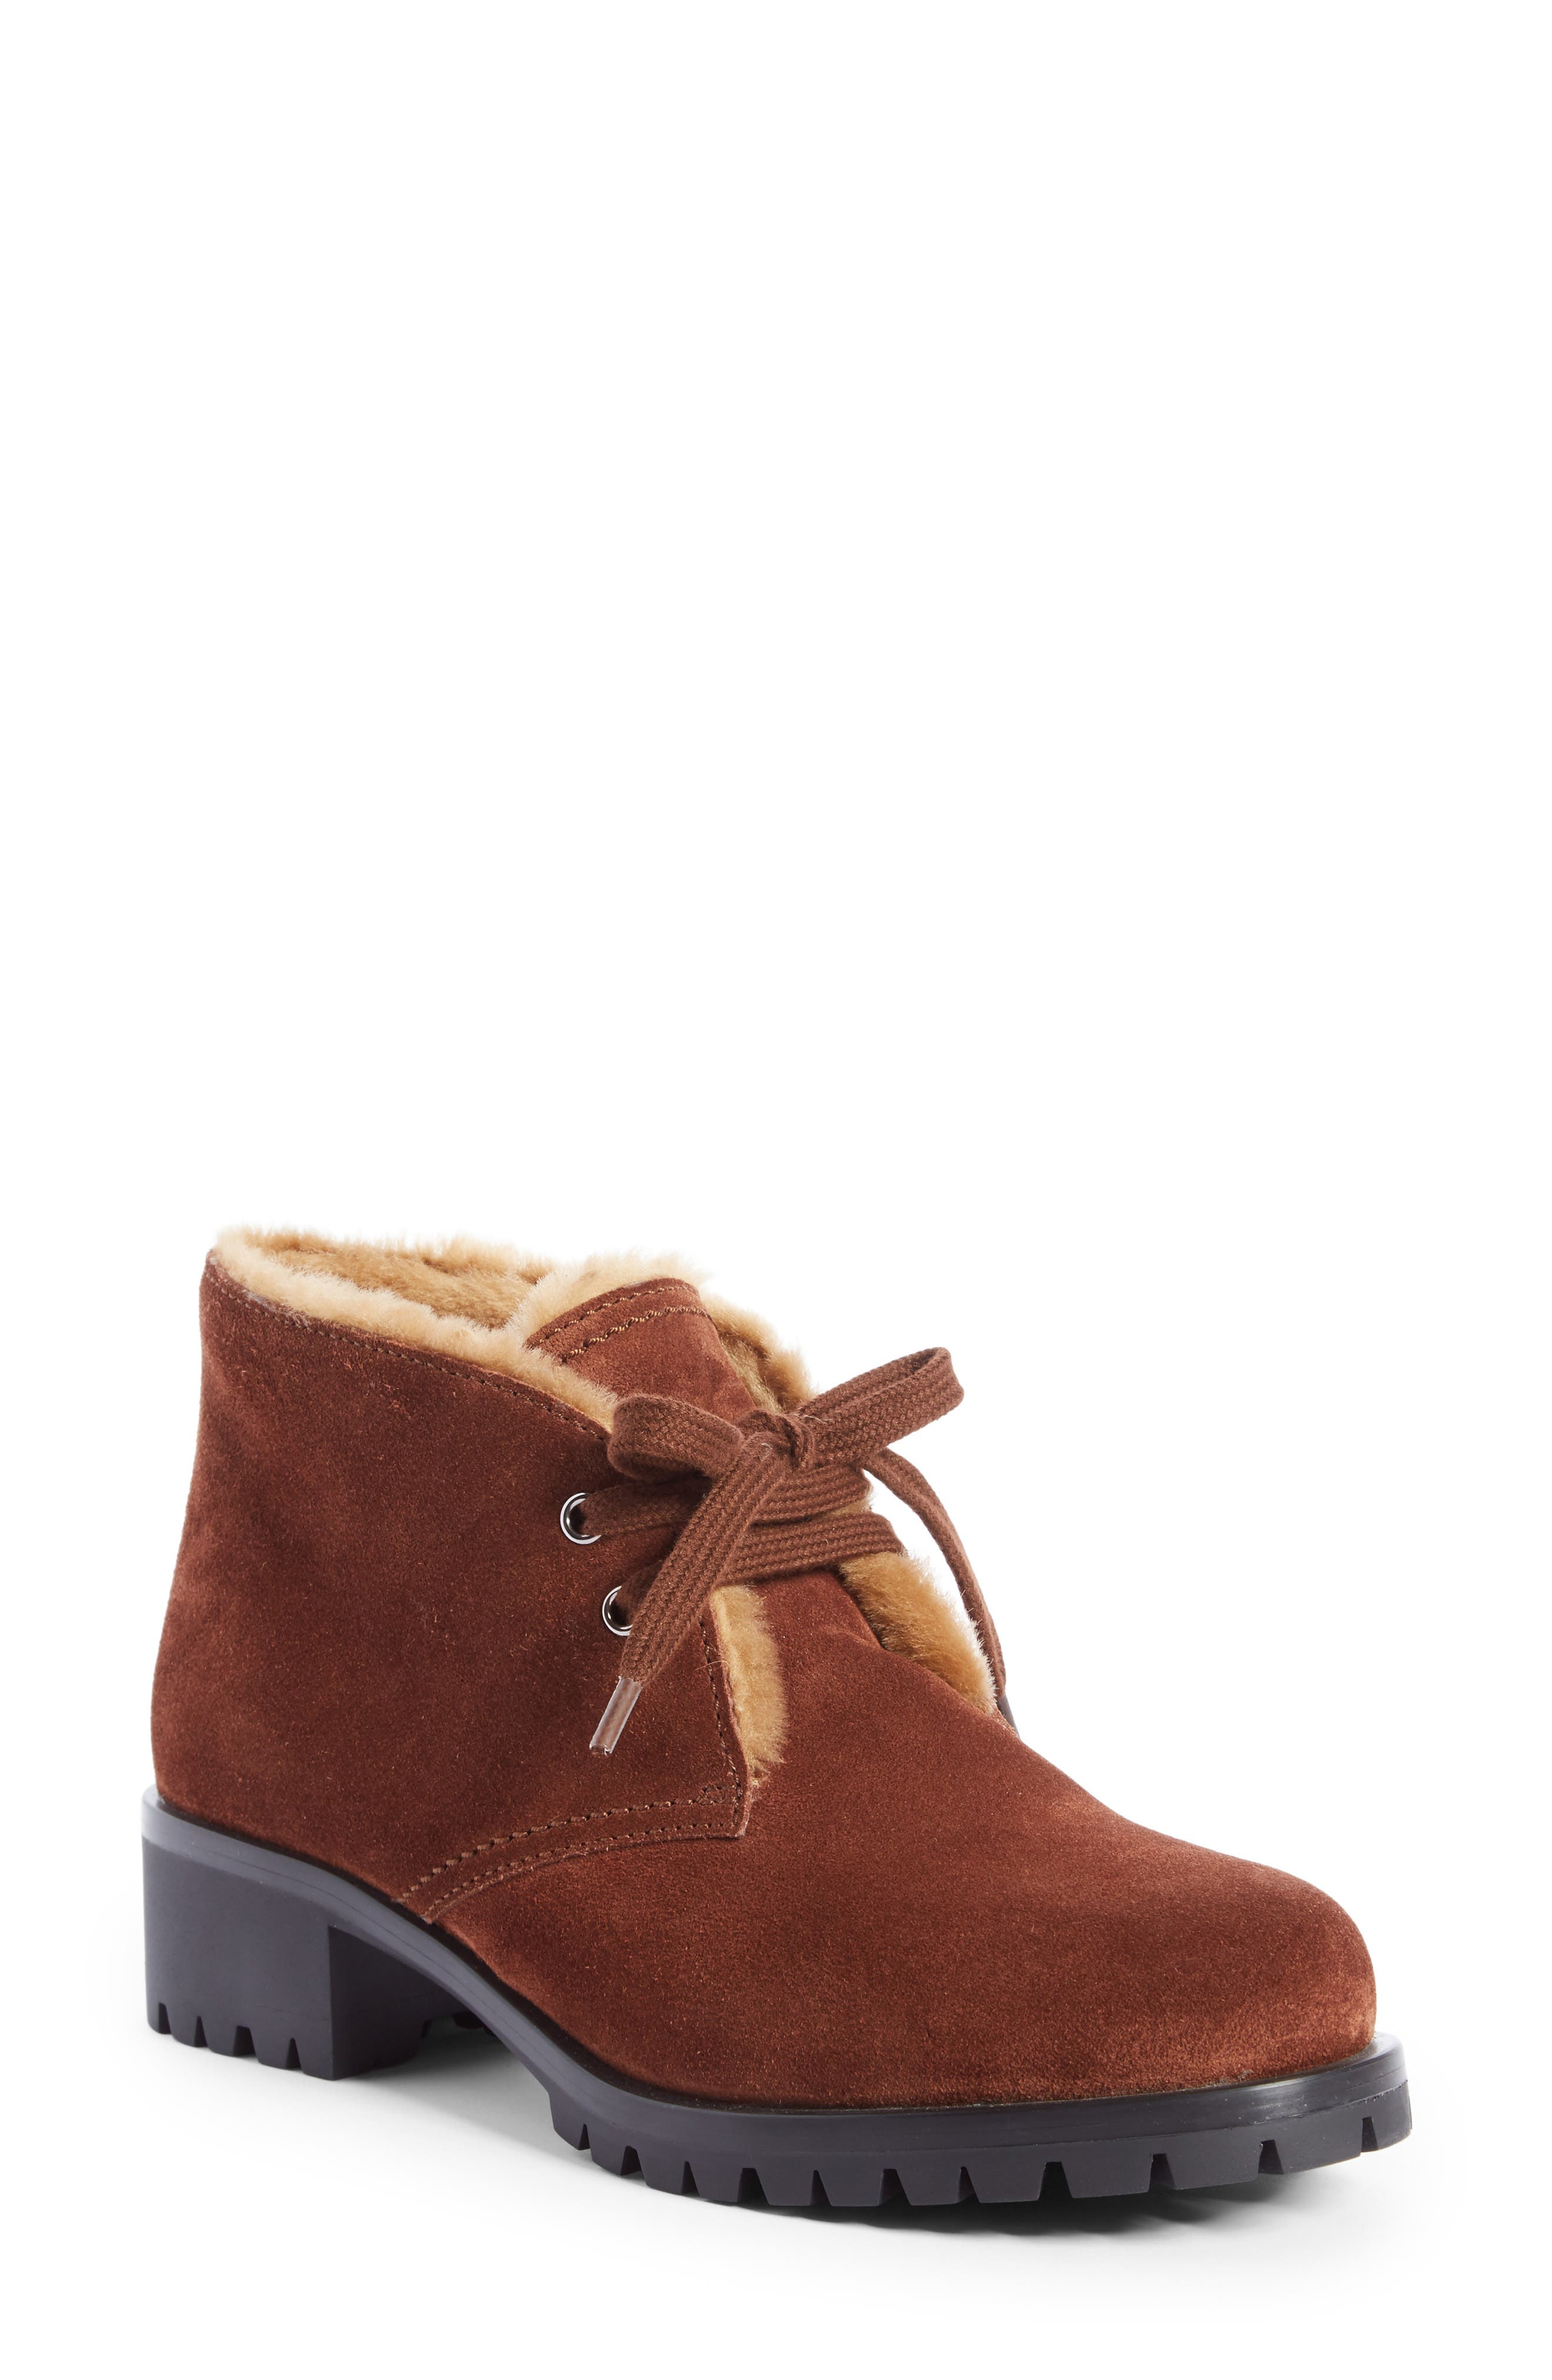 Prada Genuine Shearling Lined Bootie (Women)